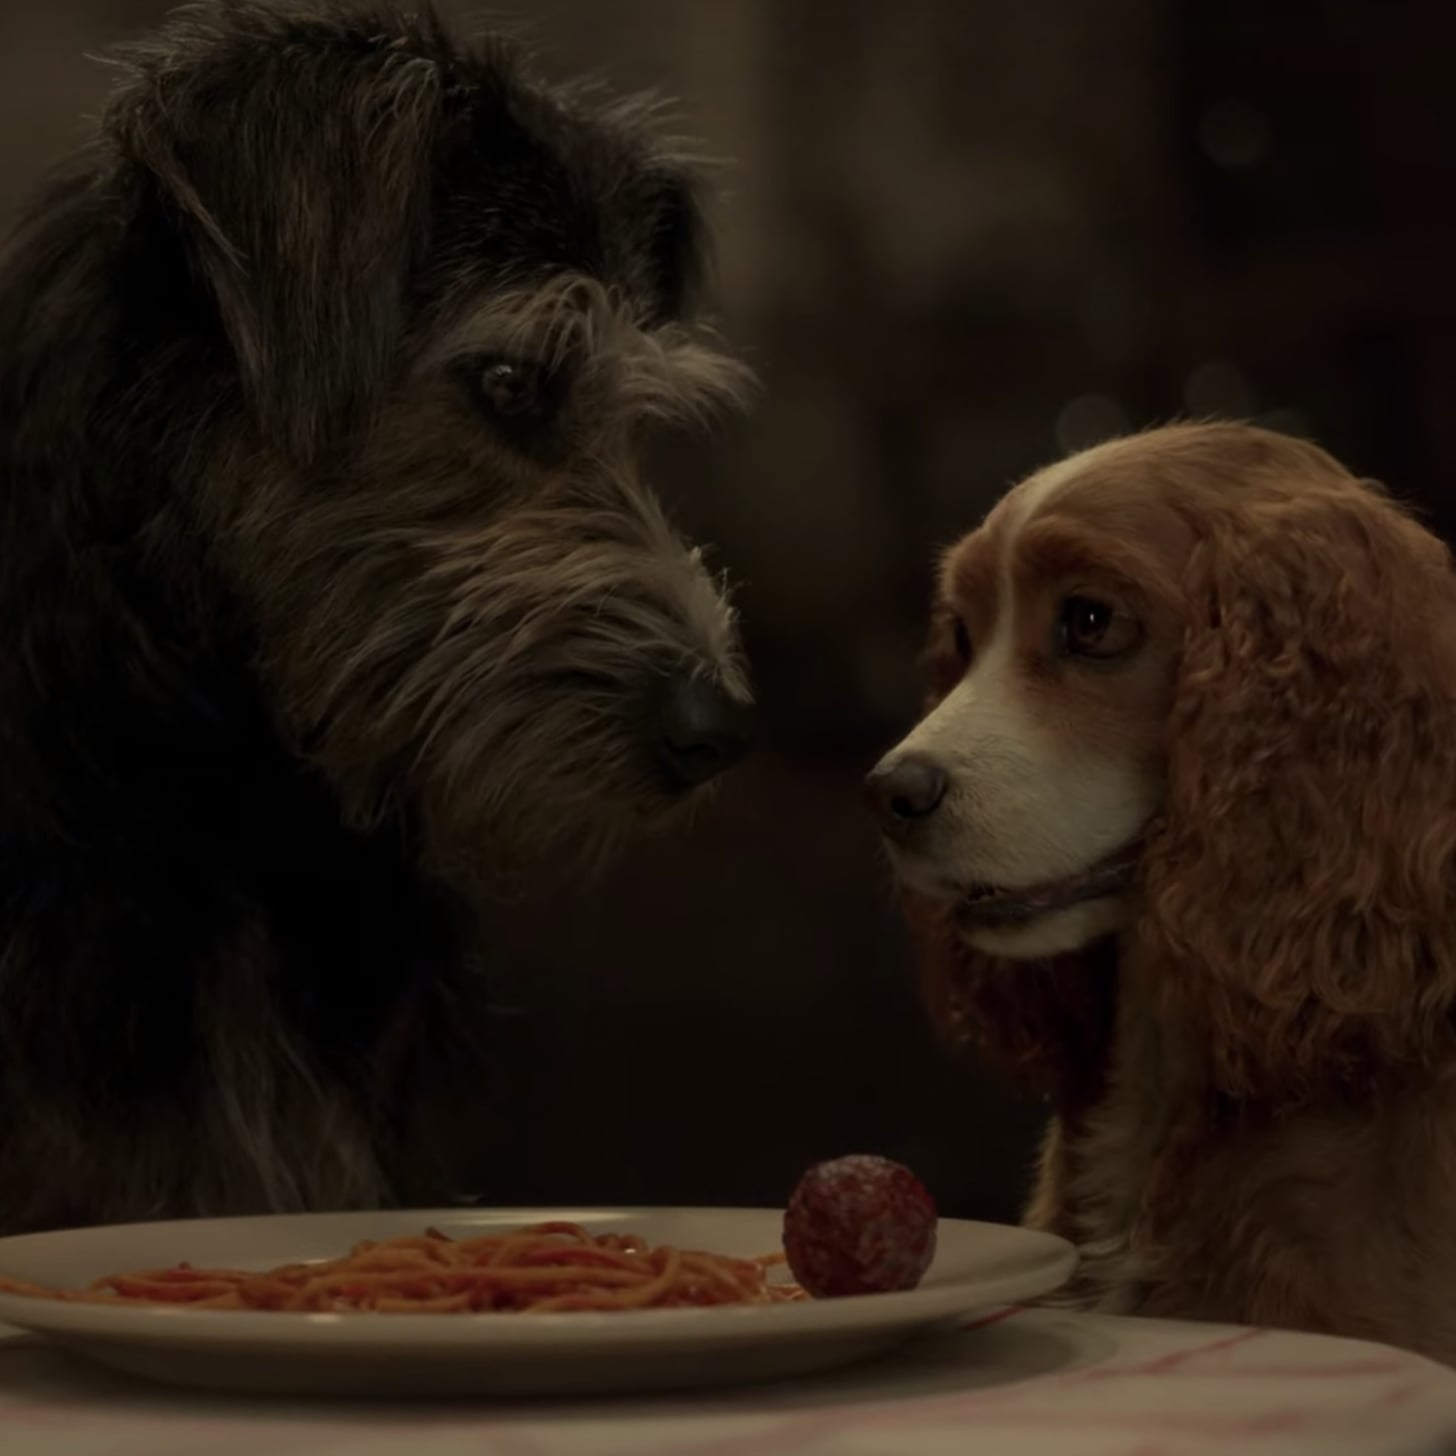 Lady And The Tramp 2019 Movie Trailer Popsugar Entertainment Uk